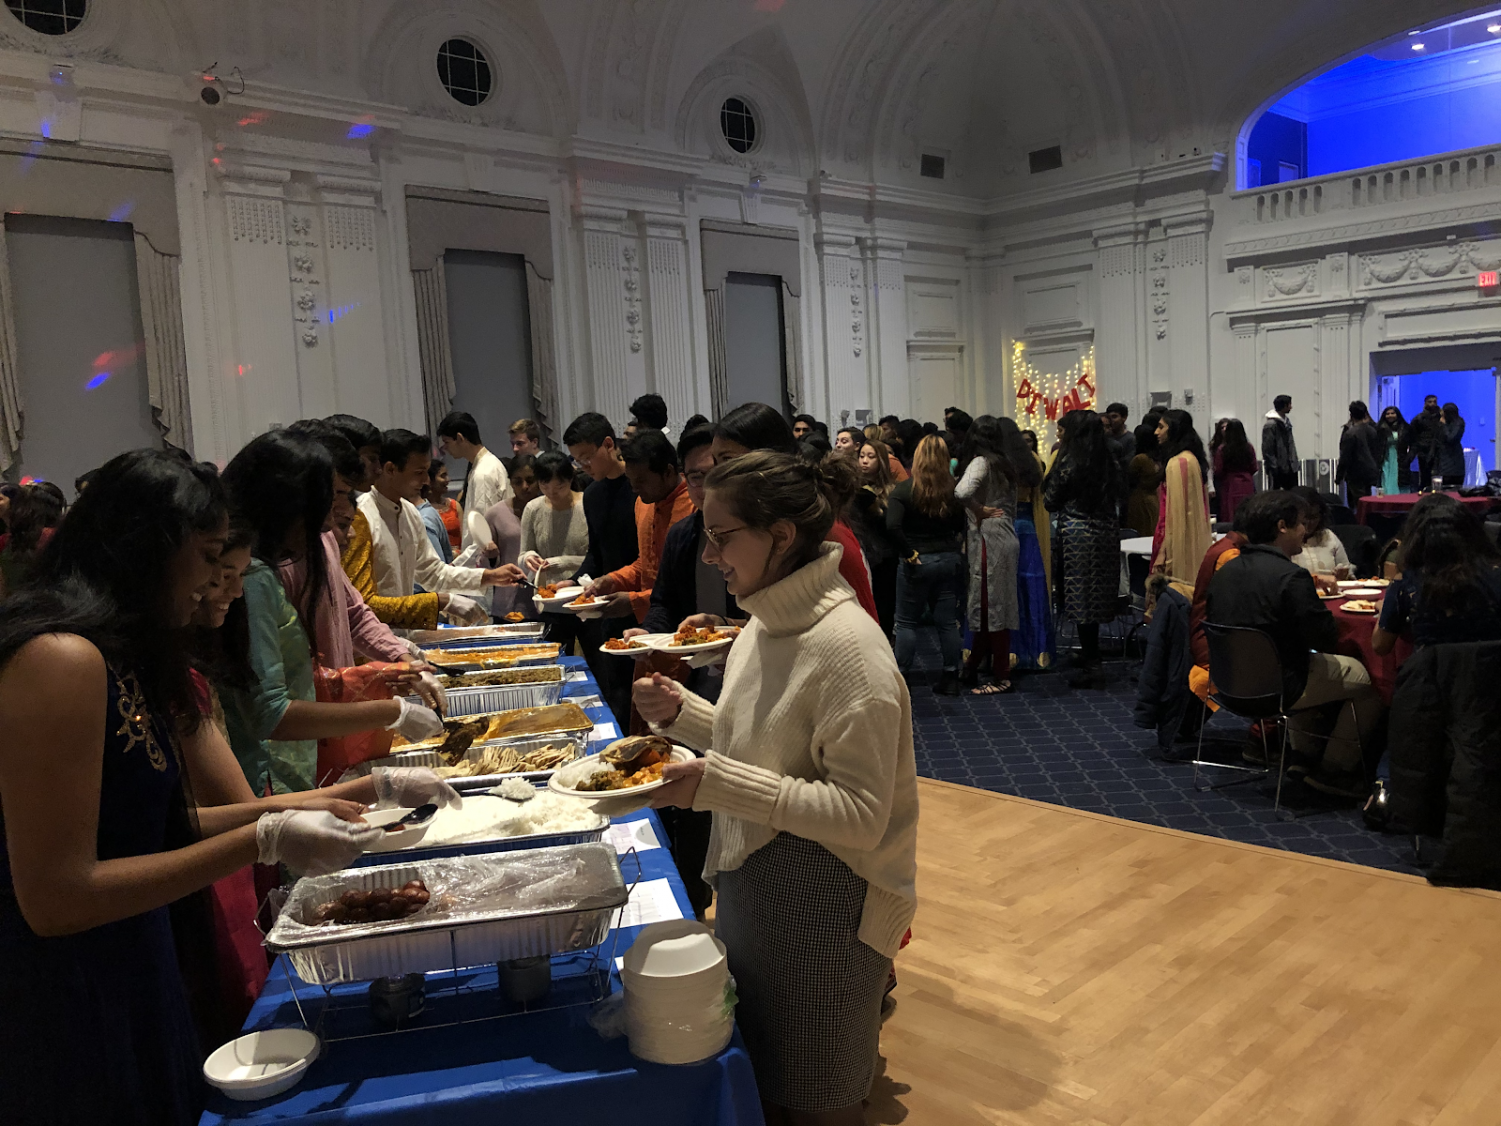 To some students, uISA's Diwali Dinner sold out in more ways than one.